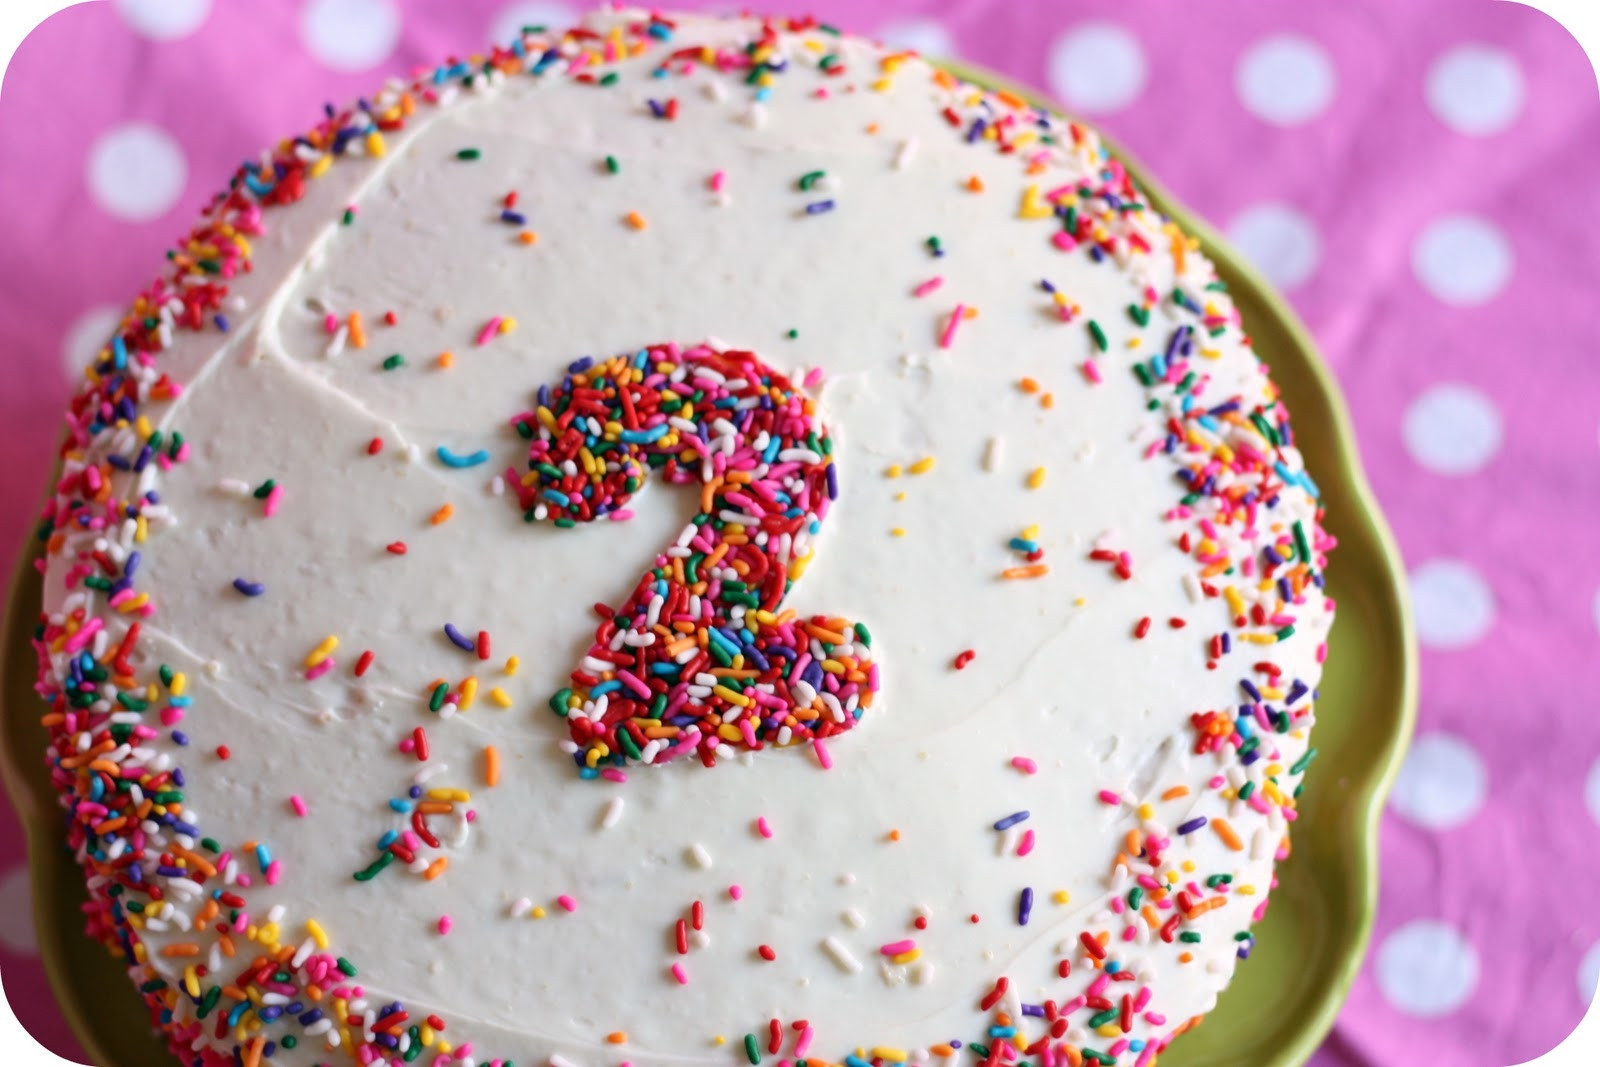 Best ideas about DIY Birthday Cakes . Save or Pin Simple Homemade Birthday Cake littlelifeofmine Now.